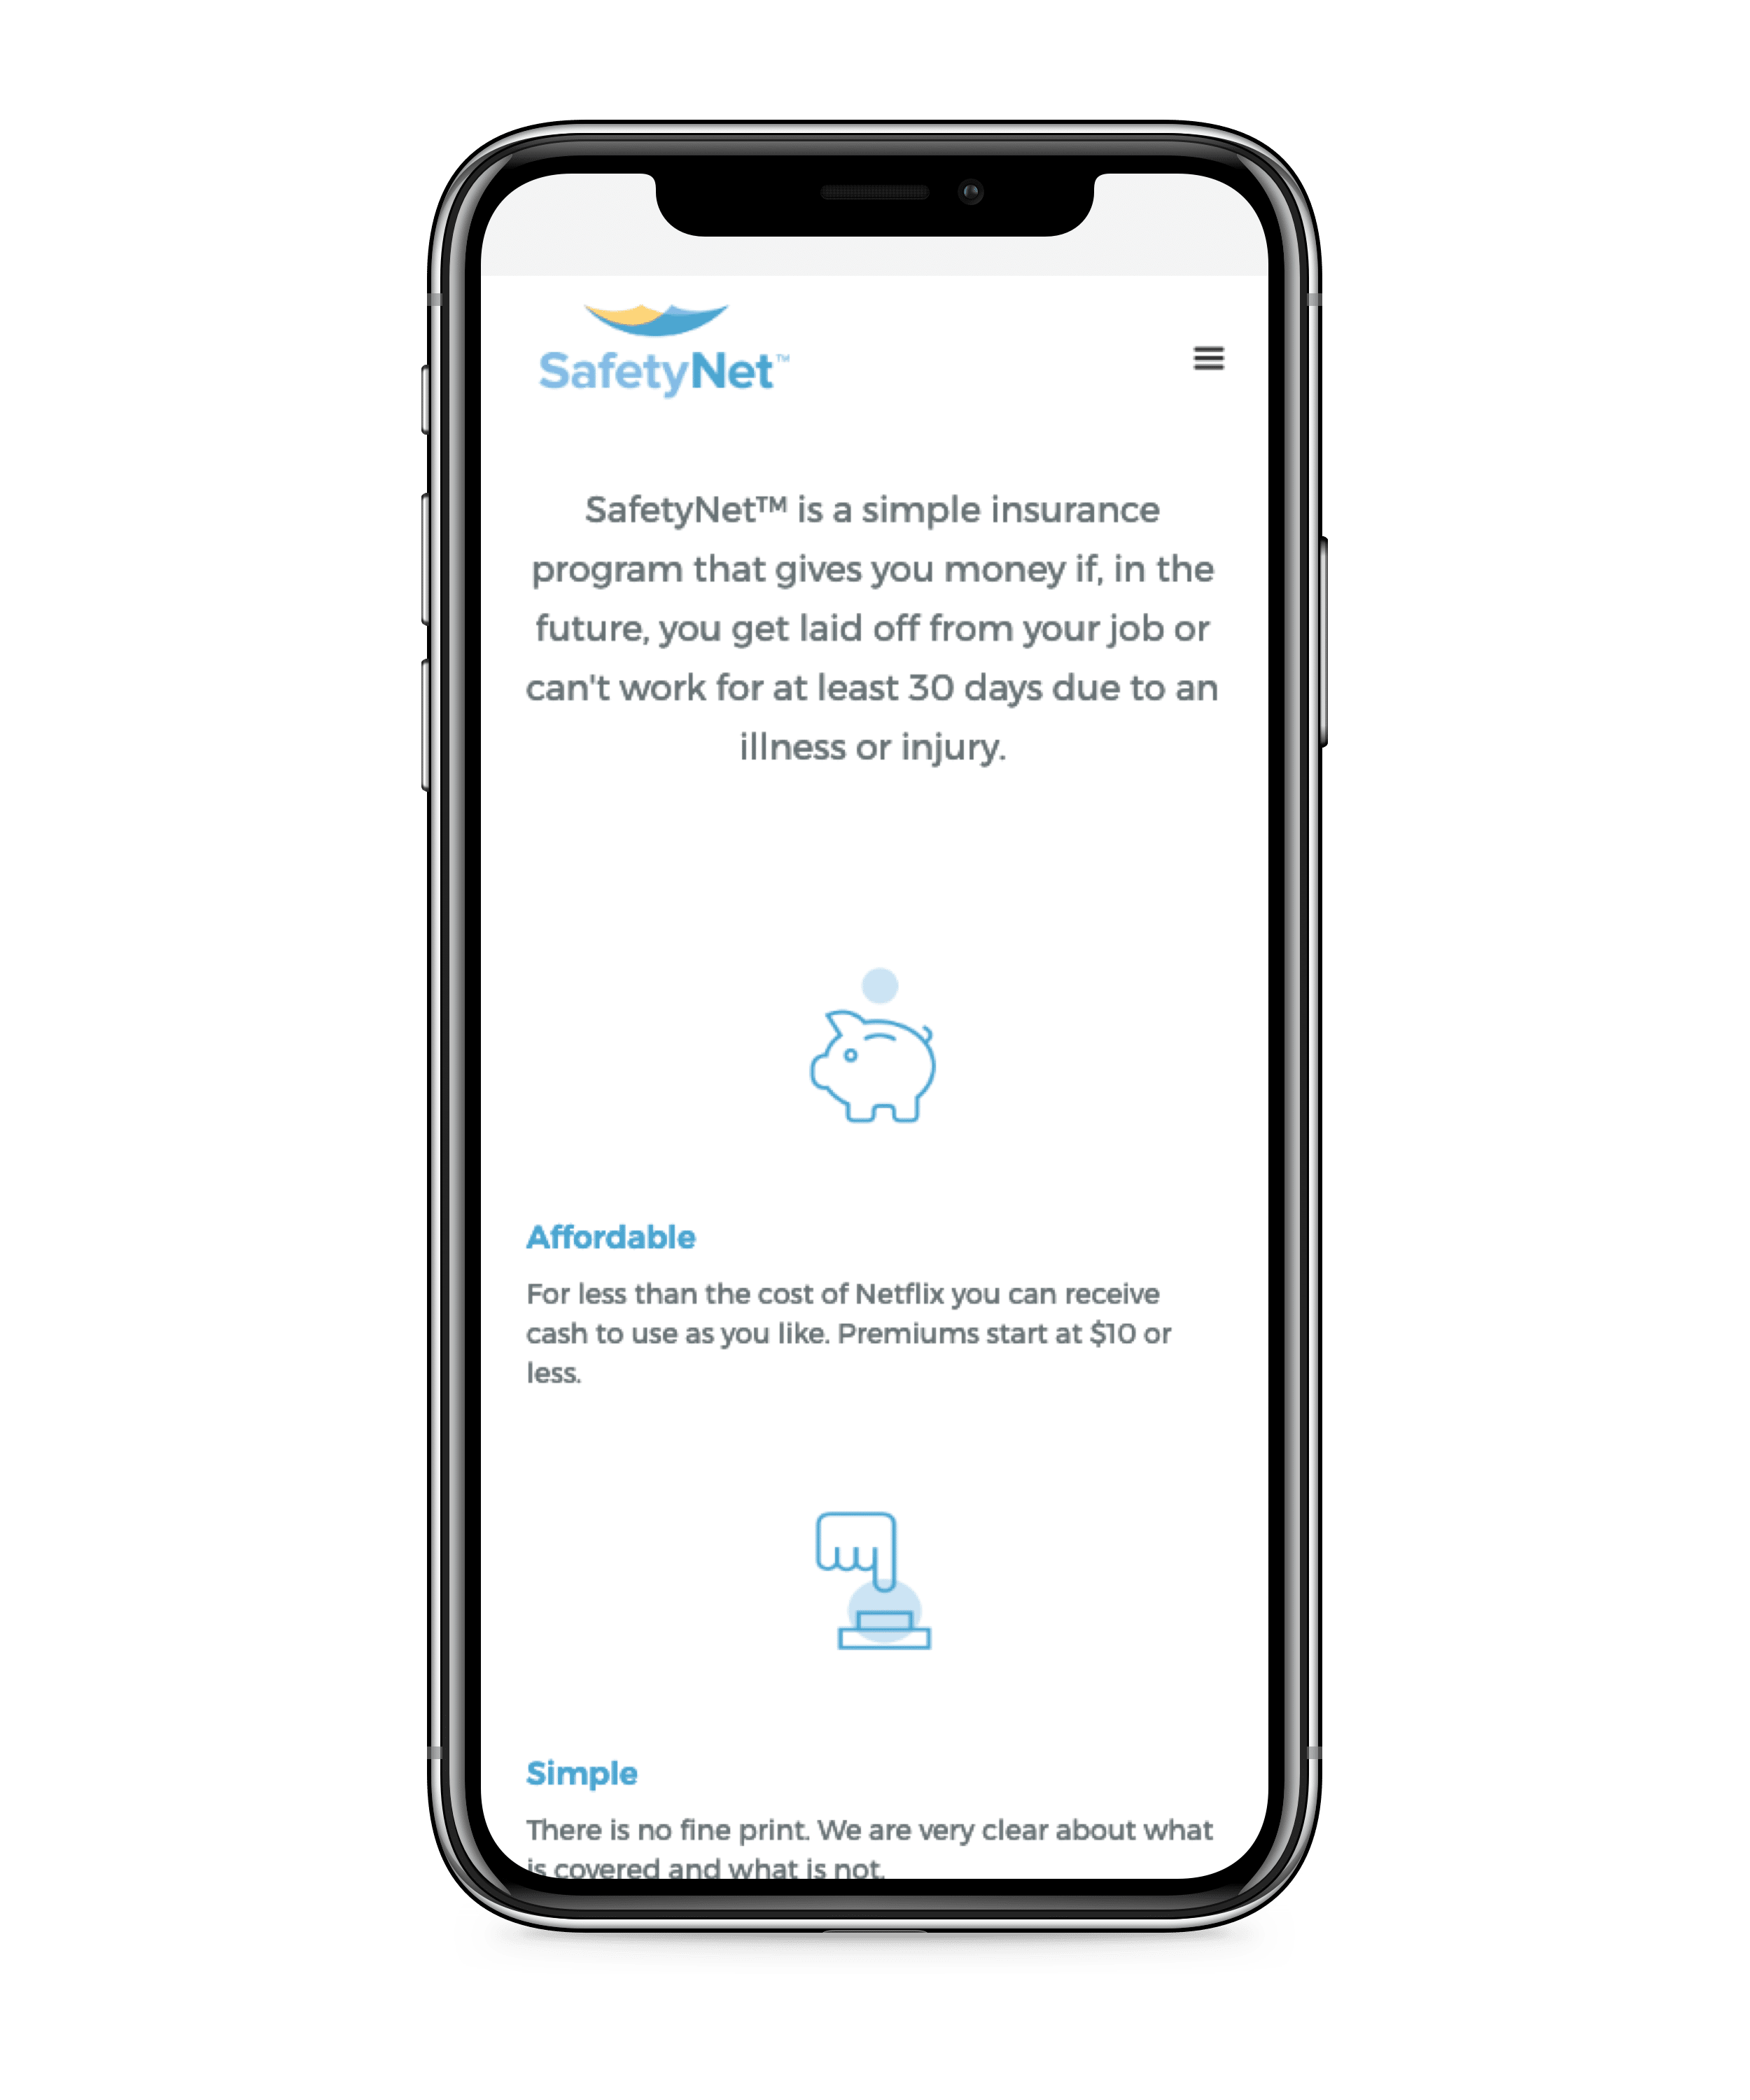 SafetyNet insurance app on iphone